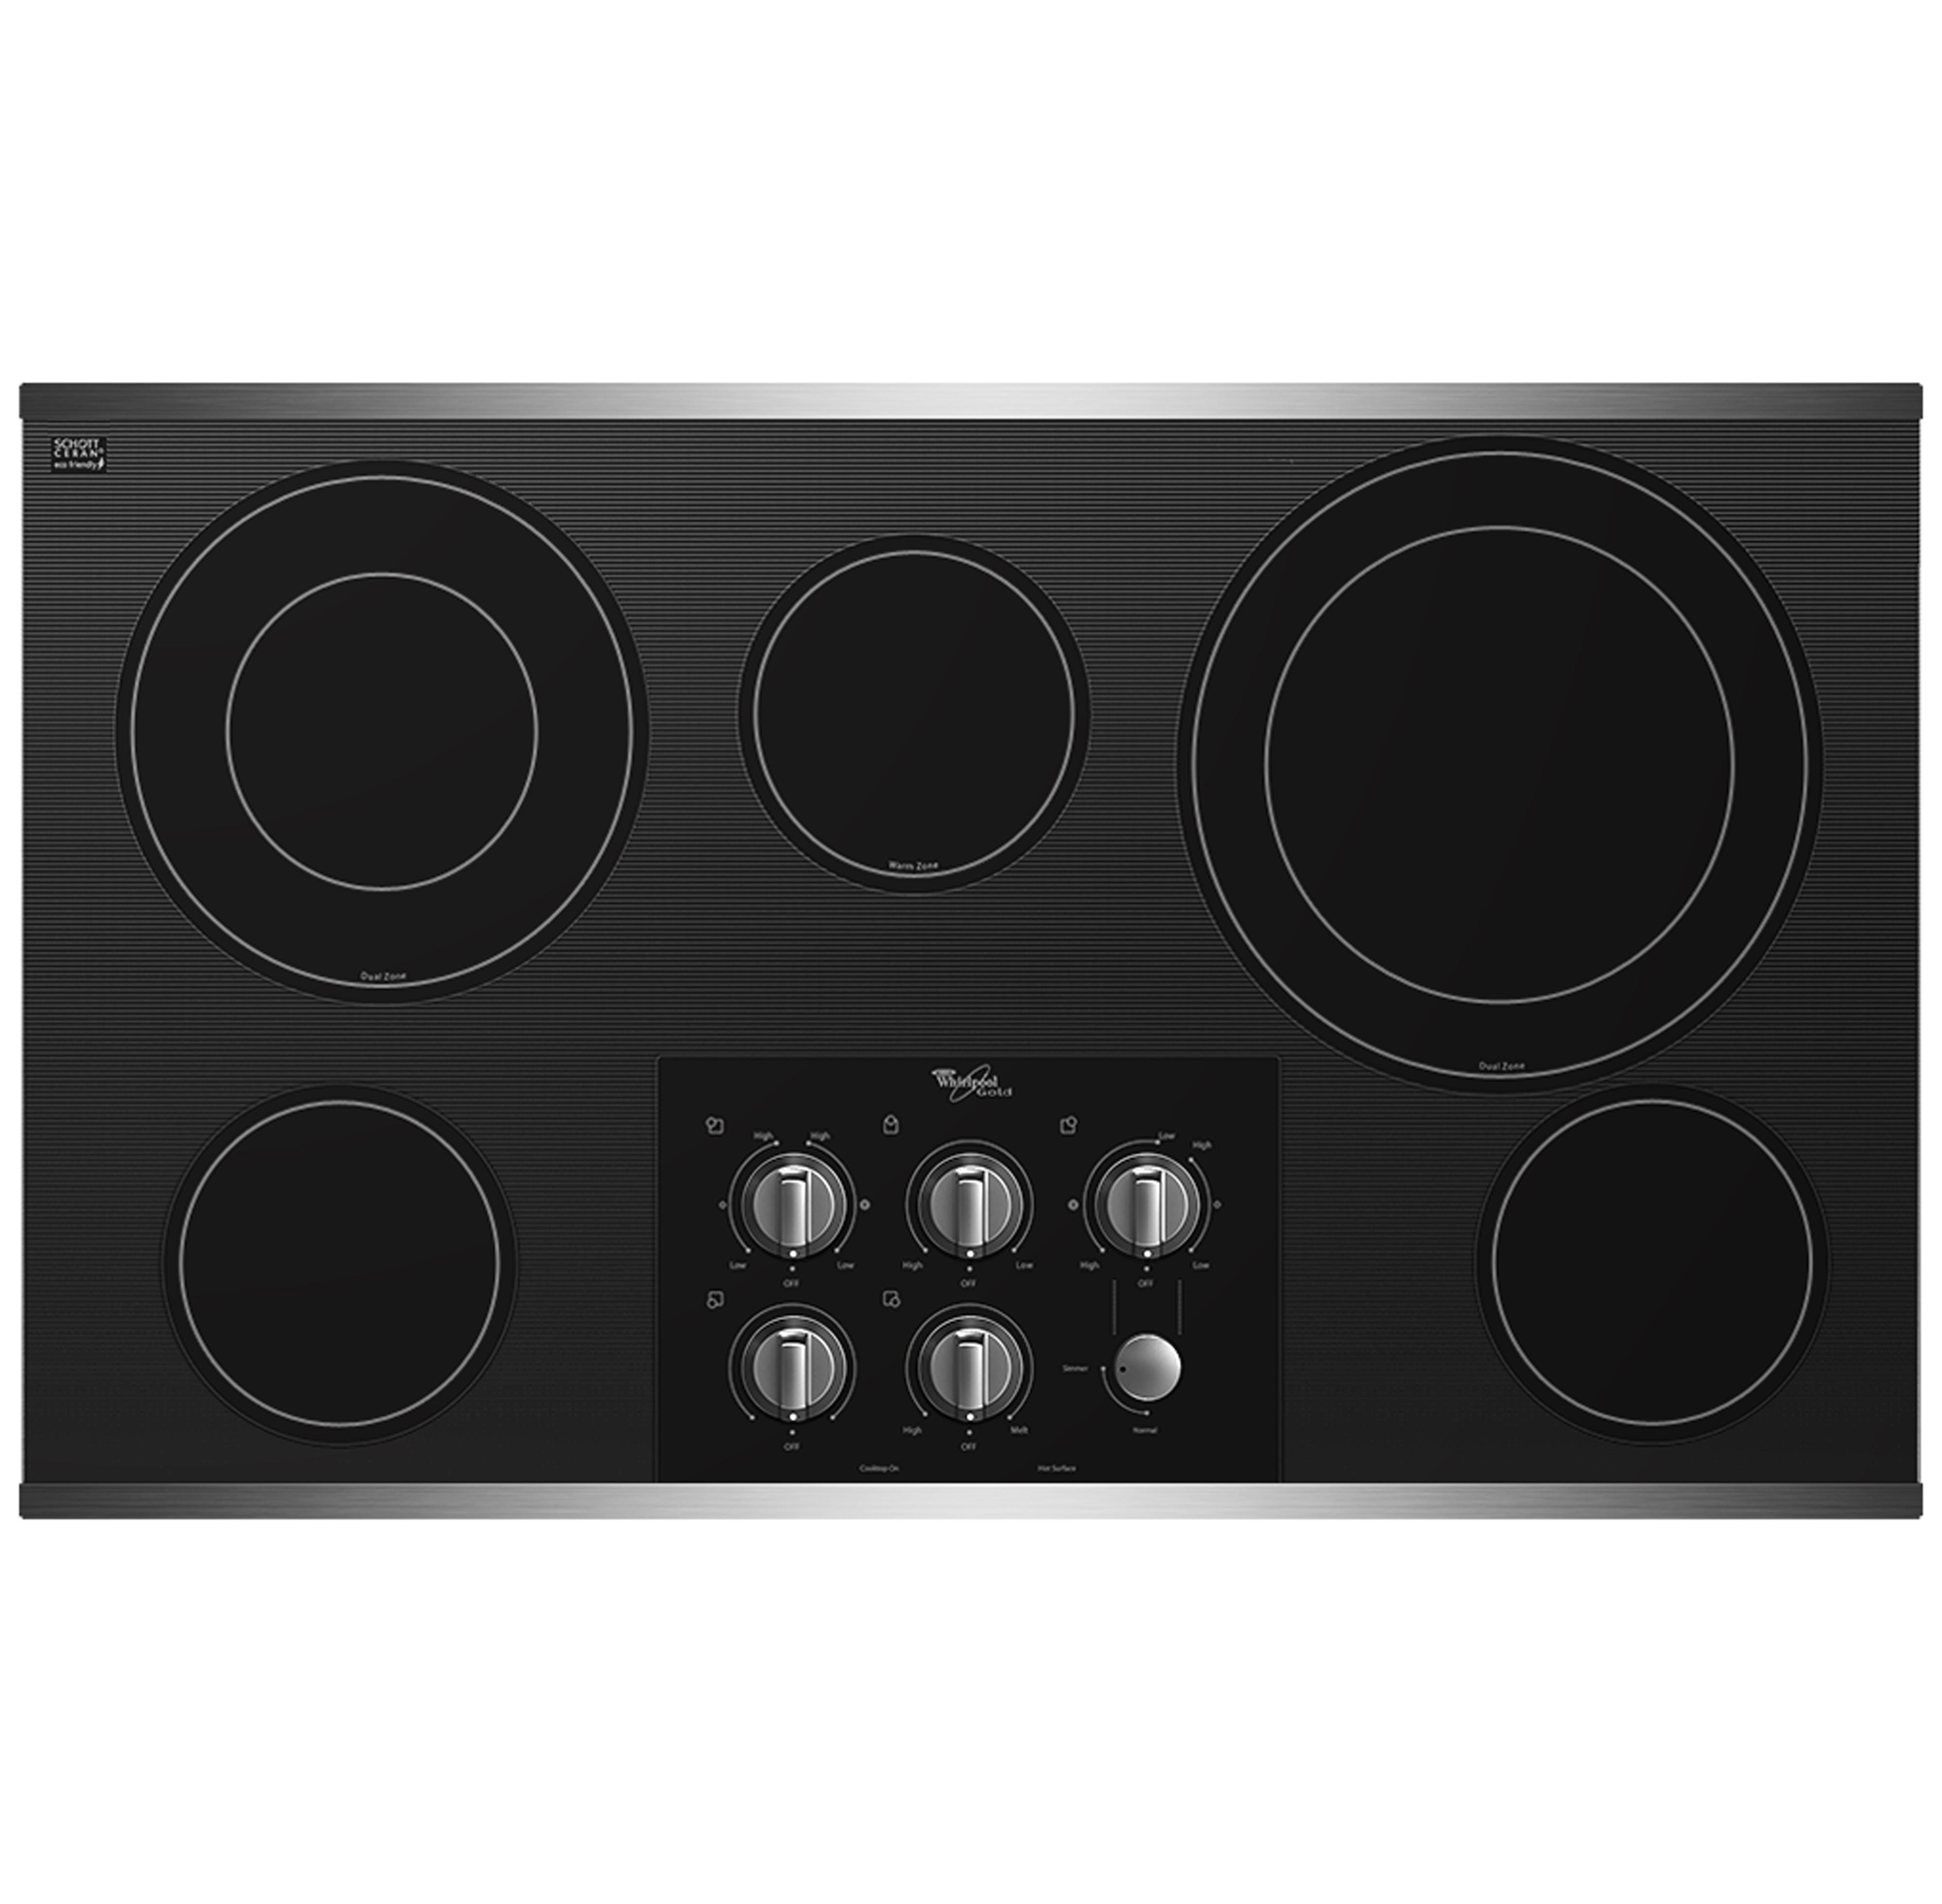 "Whirlpool Electric Cooktop 36"" Built-In Electric Cooktop - Item Number: G7CE3635XS"